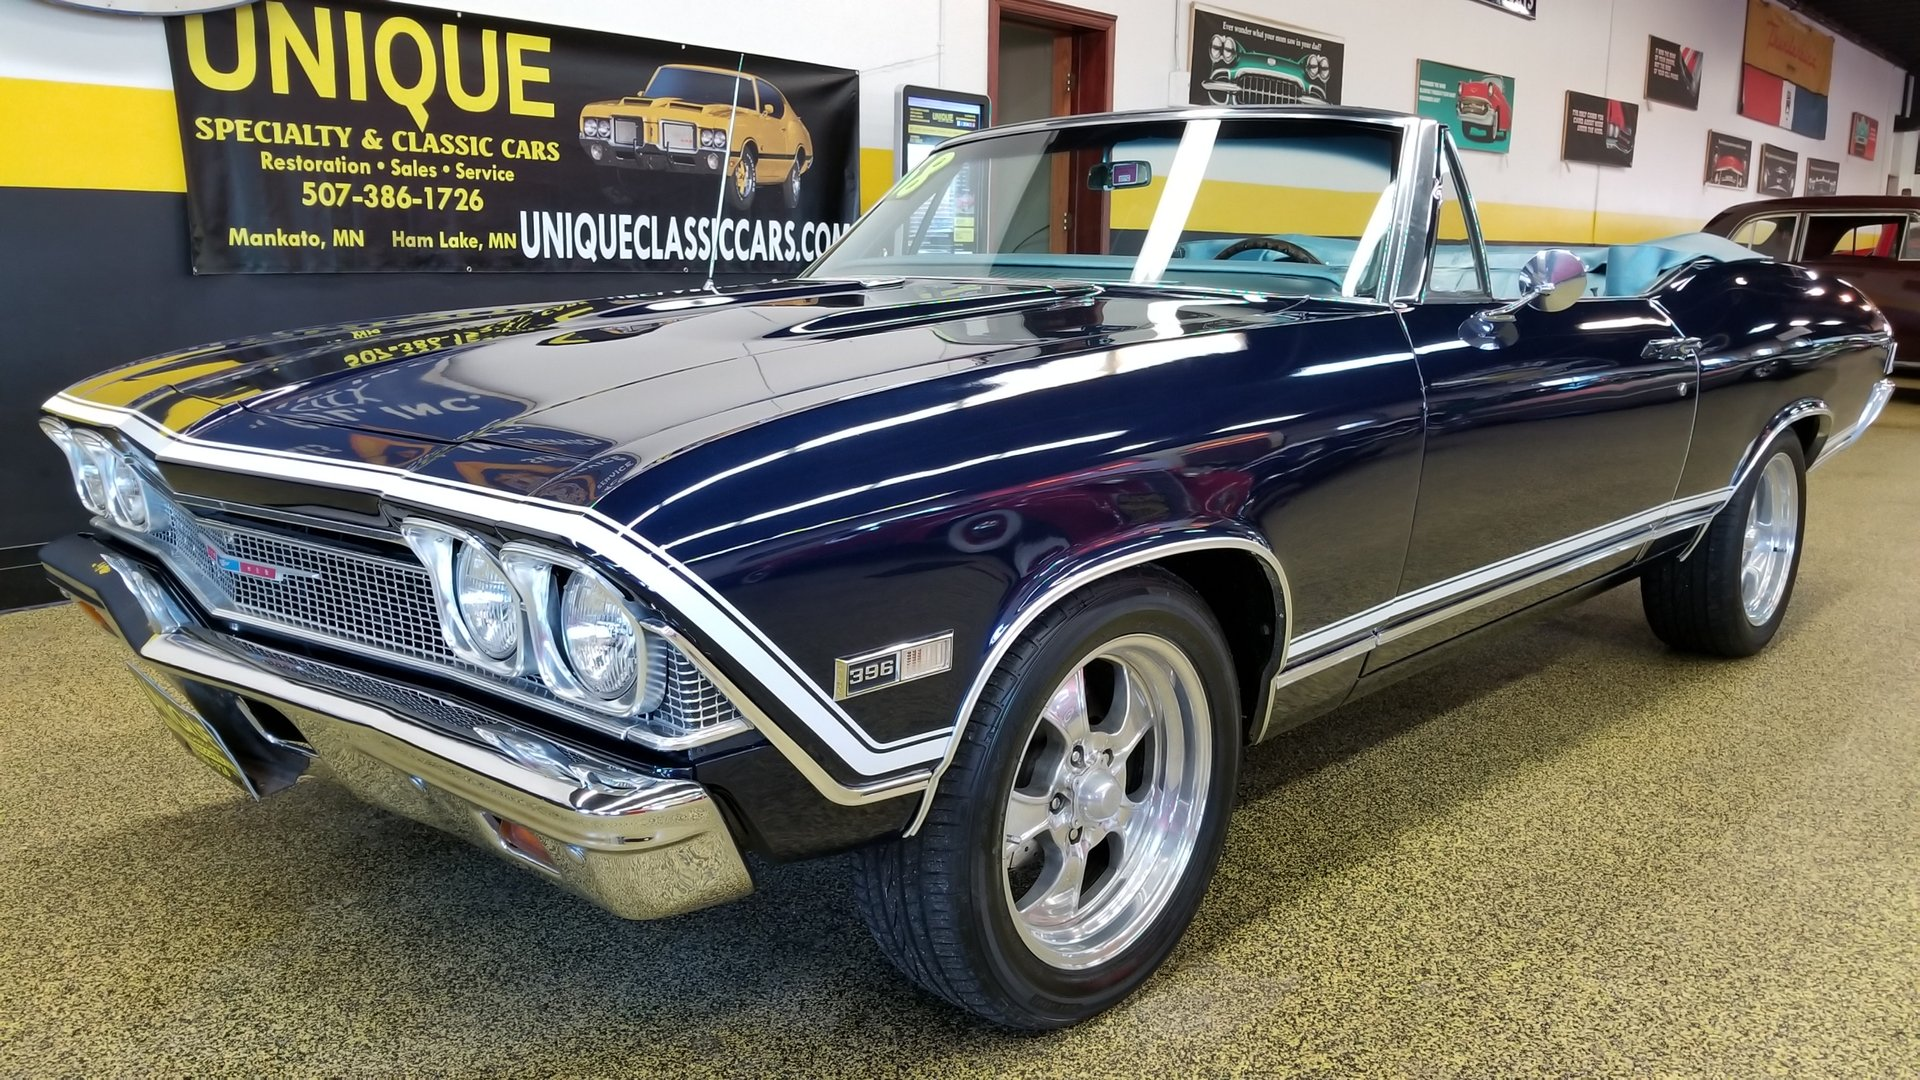 1968 Chevrolet Chevelle Convertible For Sale 64902 Motorious